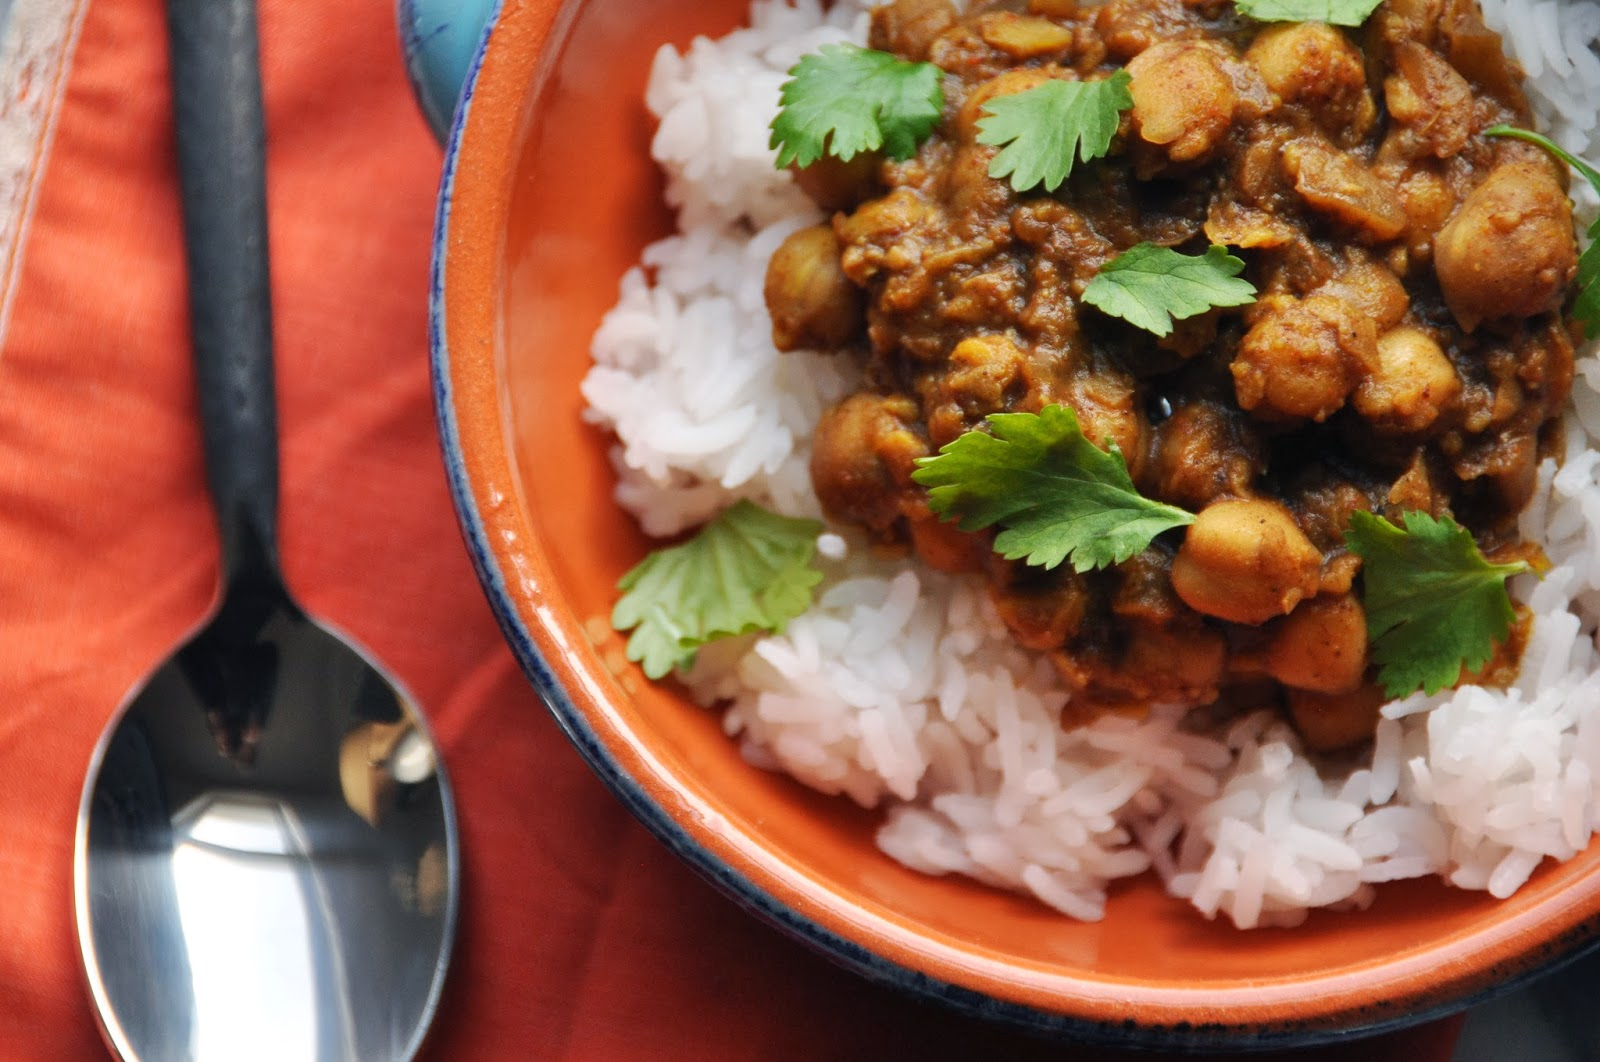 Easy Vegan Crockpot Chickpea Curry from Seeds & Thorns blog